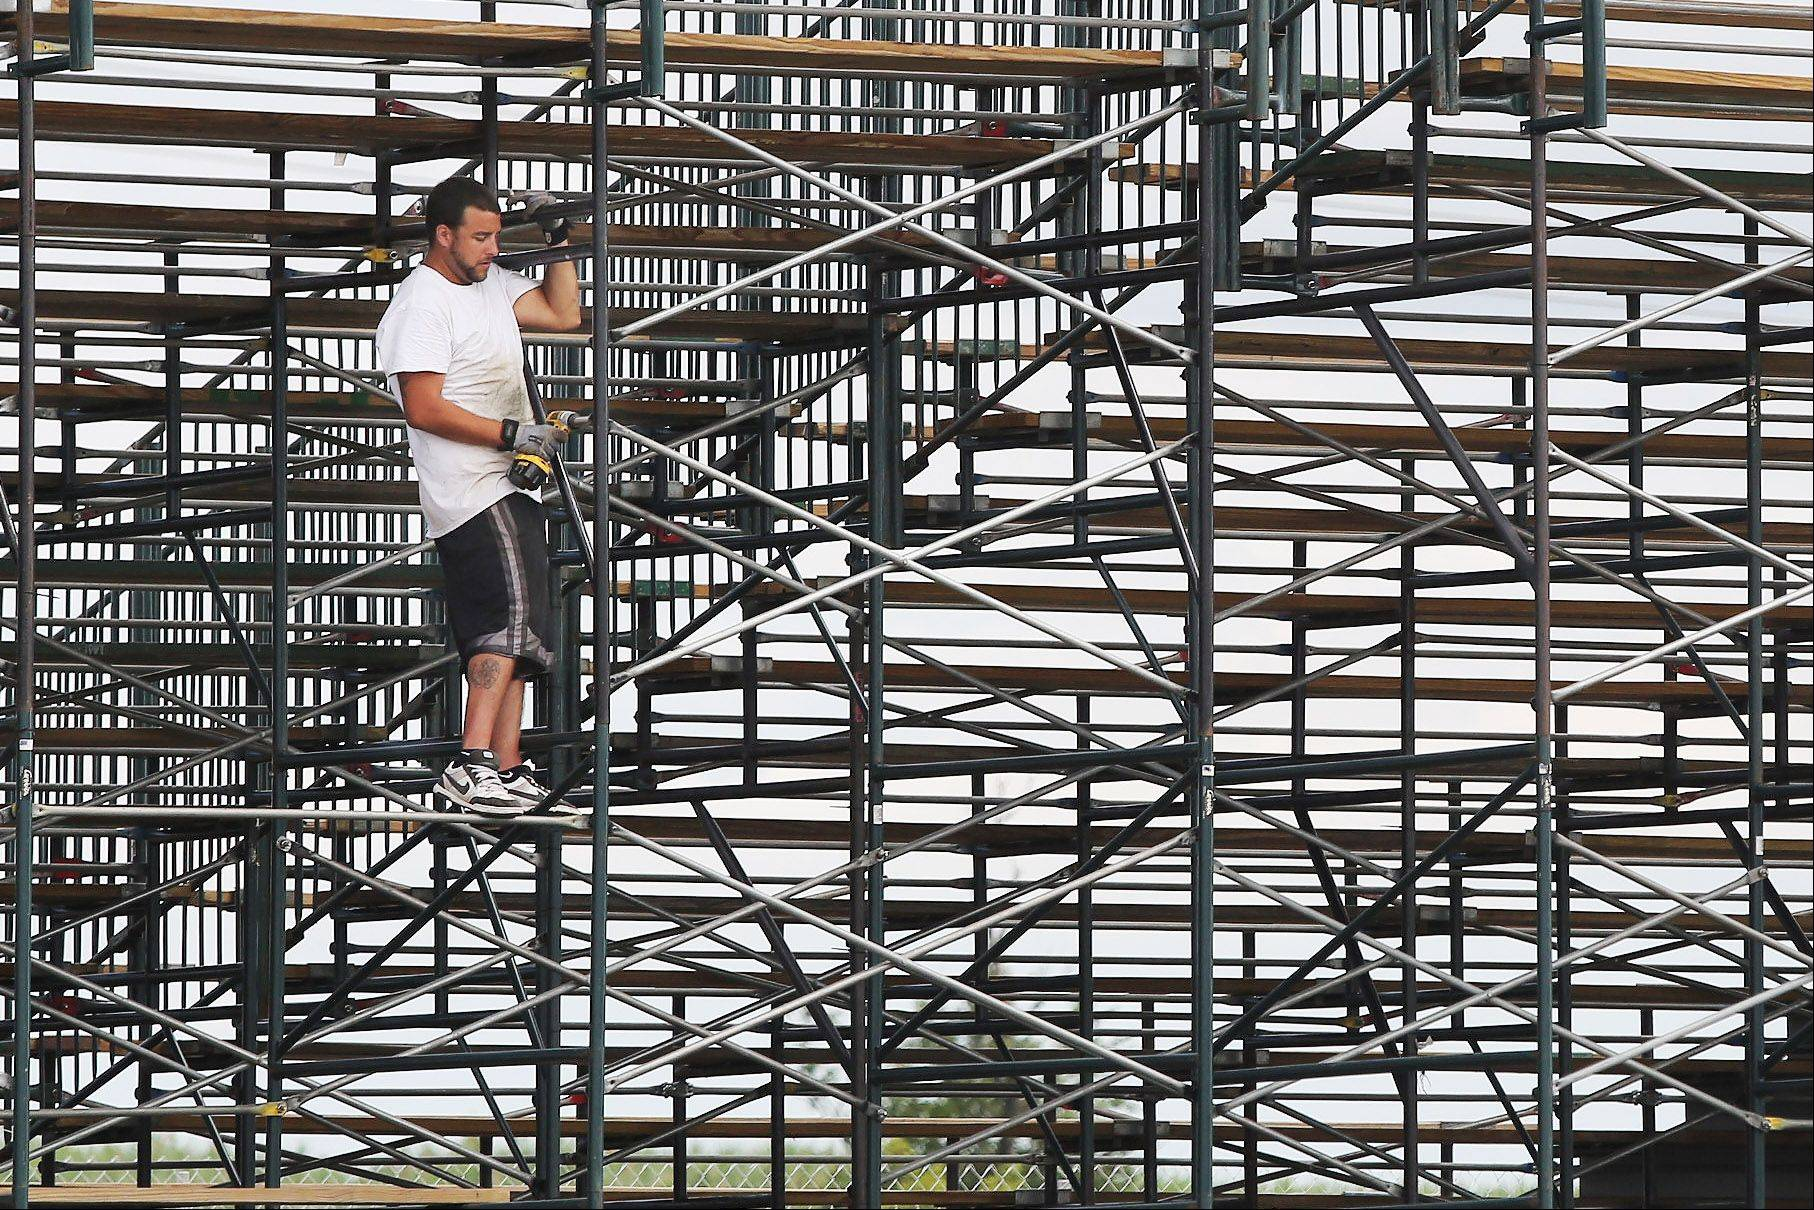 Laborer Matt Seidel works on the grandstand Tuesday in preparations for Wednesday's opening of the 2013 Lake County Fair in Grayslake.